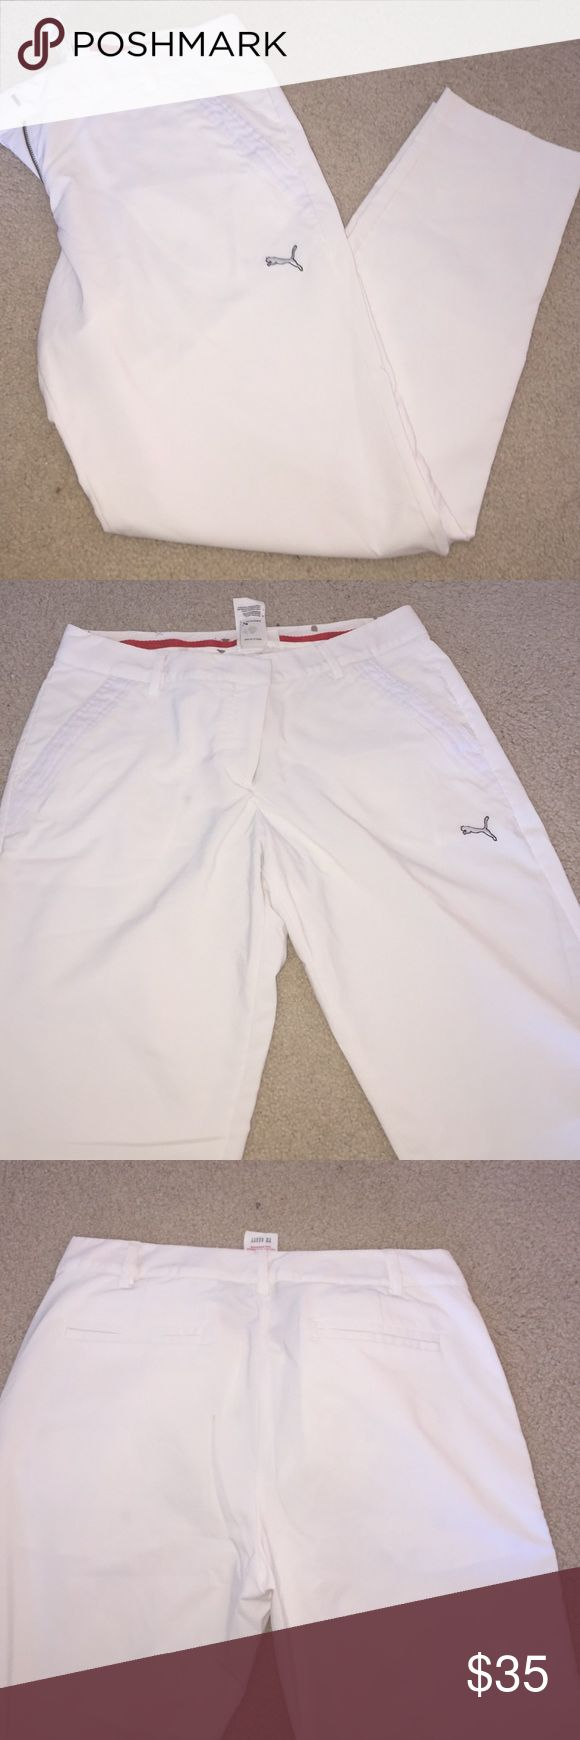 Puma sport golf pants Puma sport crop golf pants USP Dry excellent condition never worn only tried on Puma Pants Ankle & Cropped